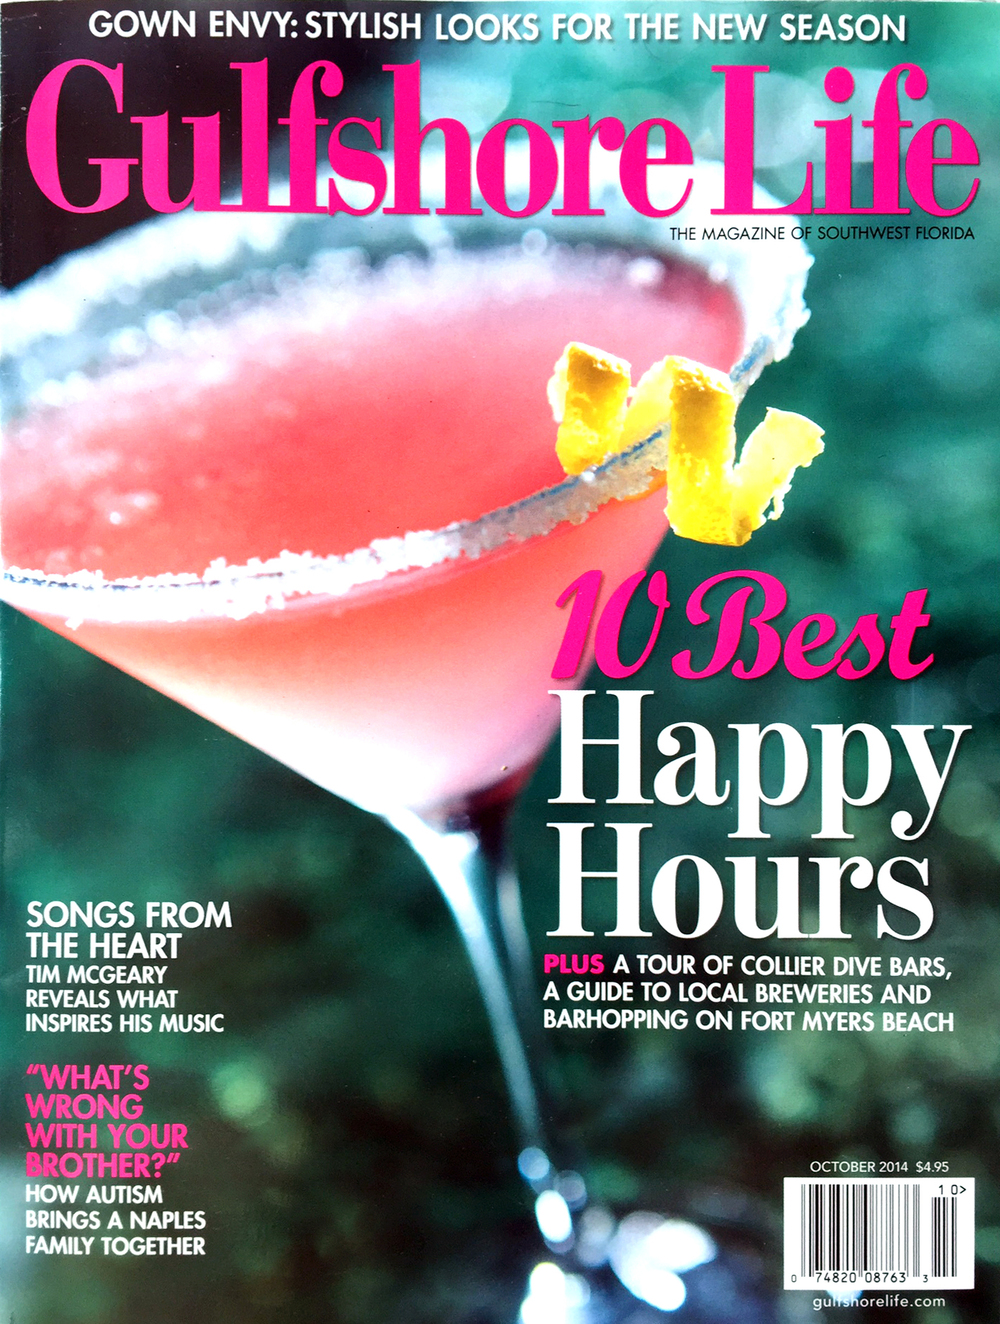 gulfshore_life_magazine_october_issue_2014_cocktail_cover_photographed_by_vanessa_rogers